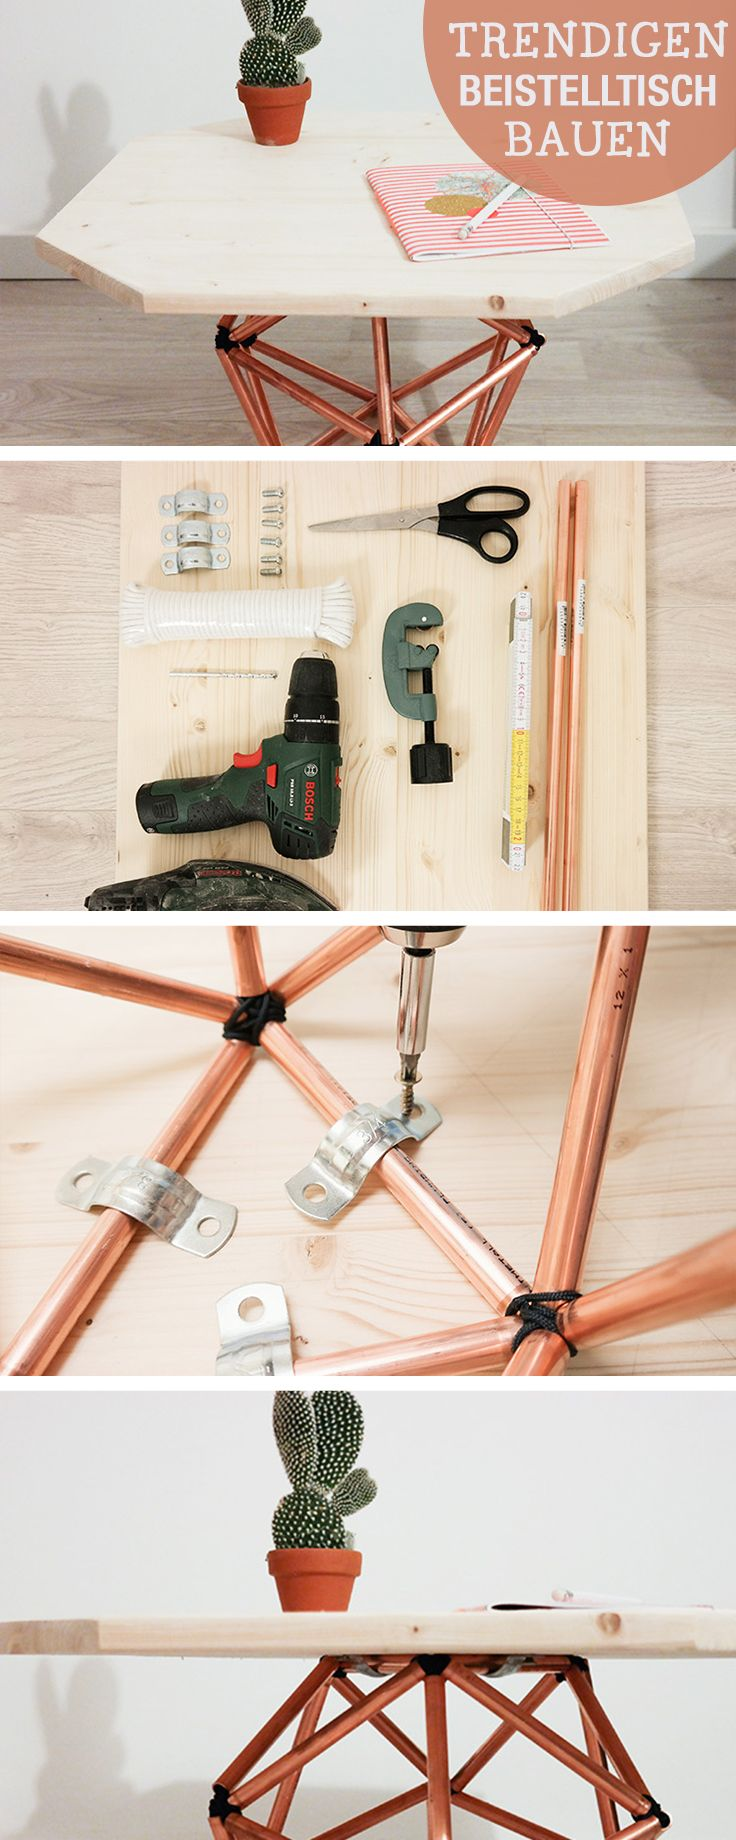 DIY- Anleitung: Couchtisch aus Kupferrohren bauen, Industriedesign / diy tutorial: table with copper pipes, industrial design via DaWanda.com